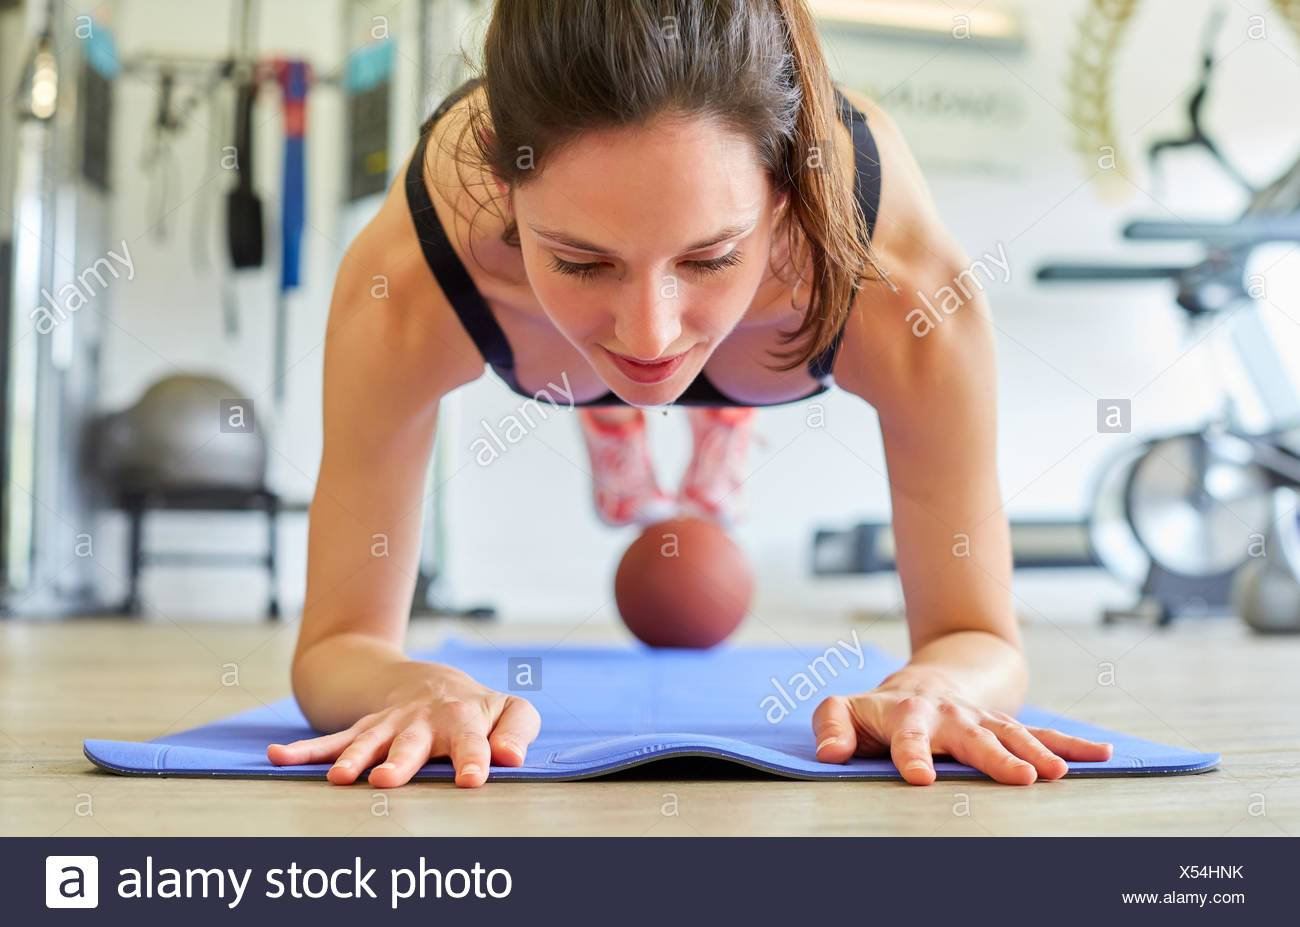 Femme faisant des tractions avec ball in gym Photo Stock